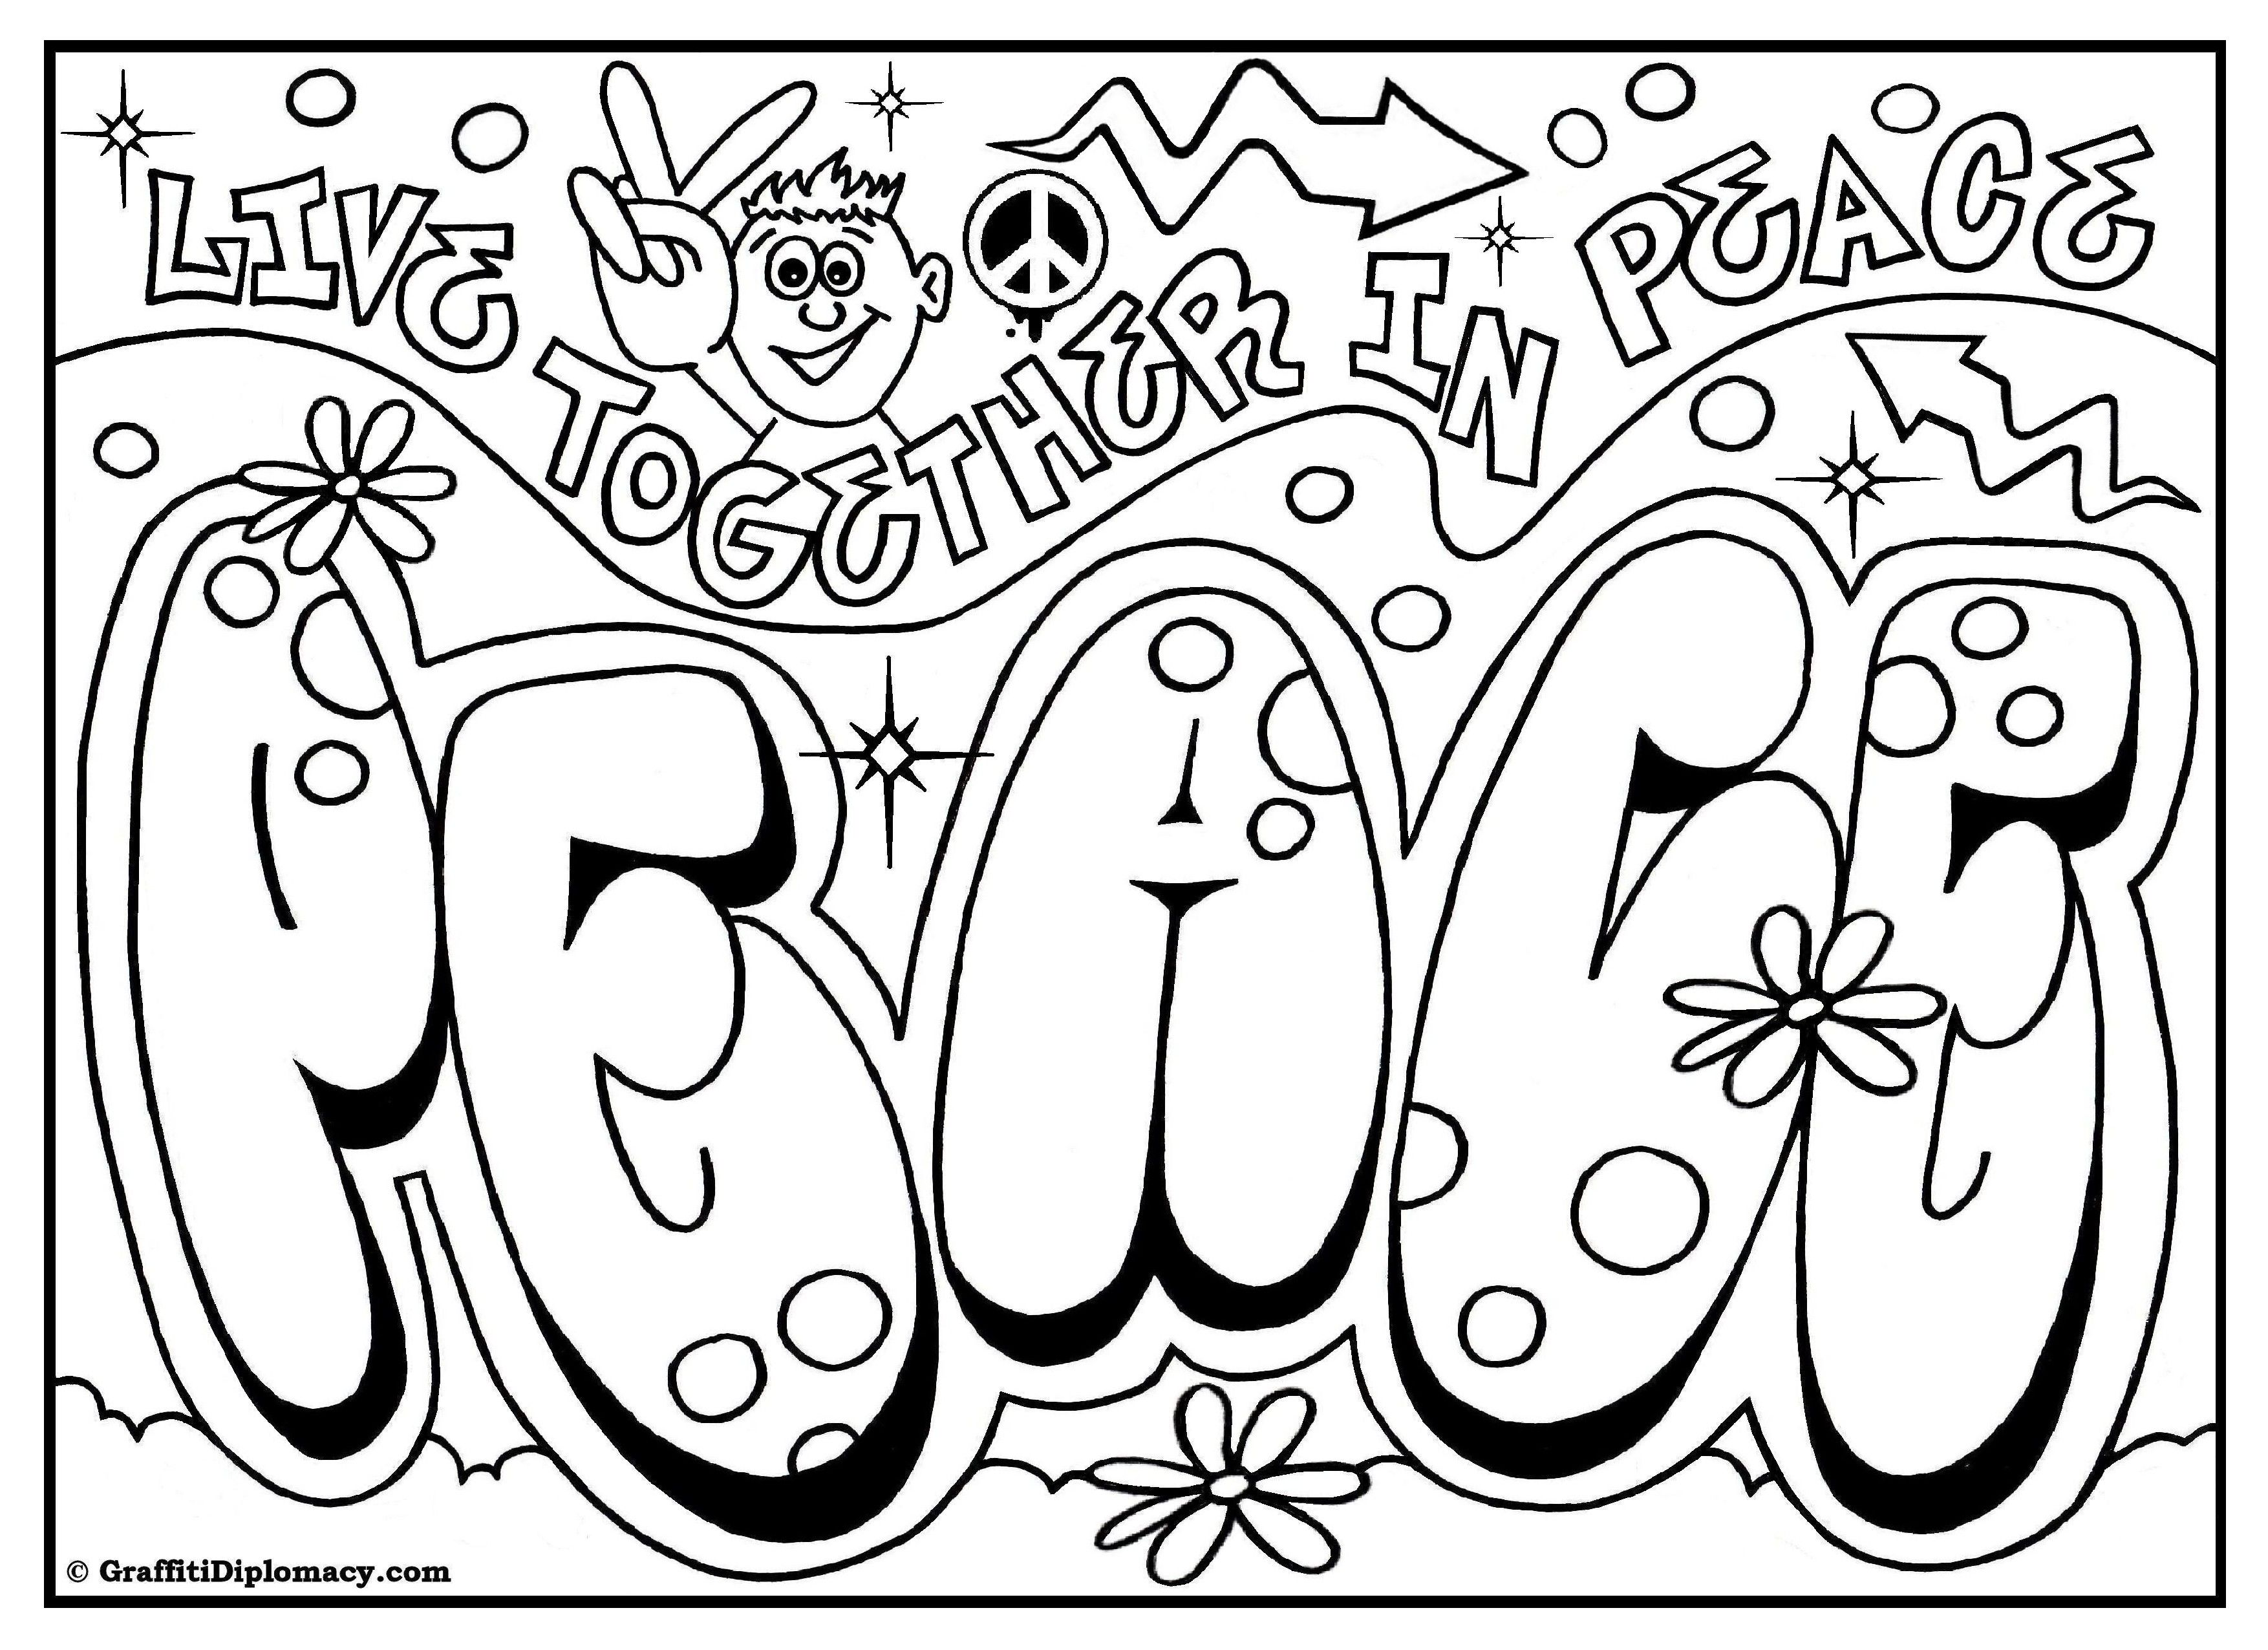 coloring pages create happiness - Google Search | Coloring Pages ...